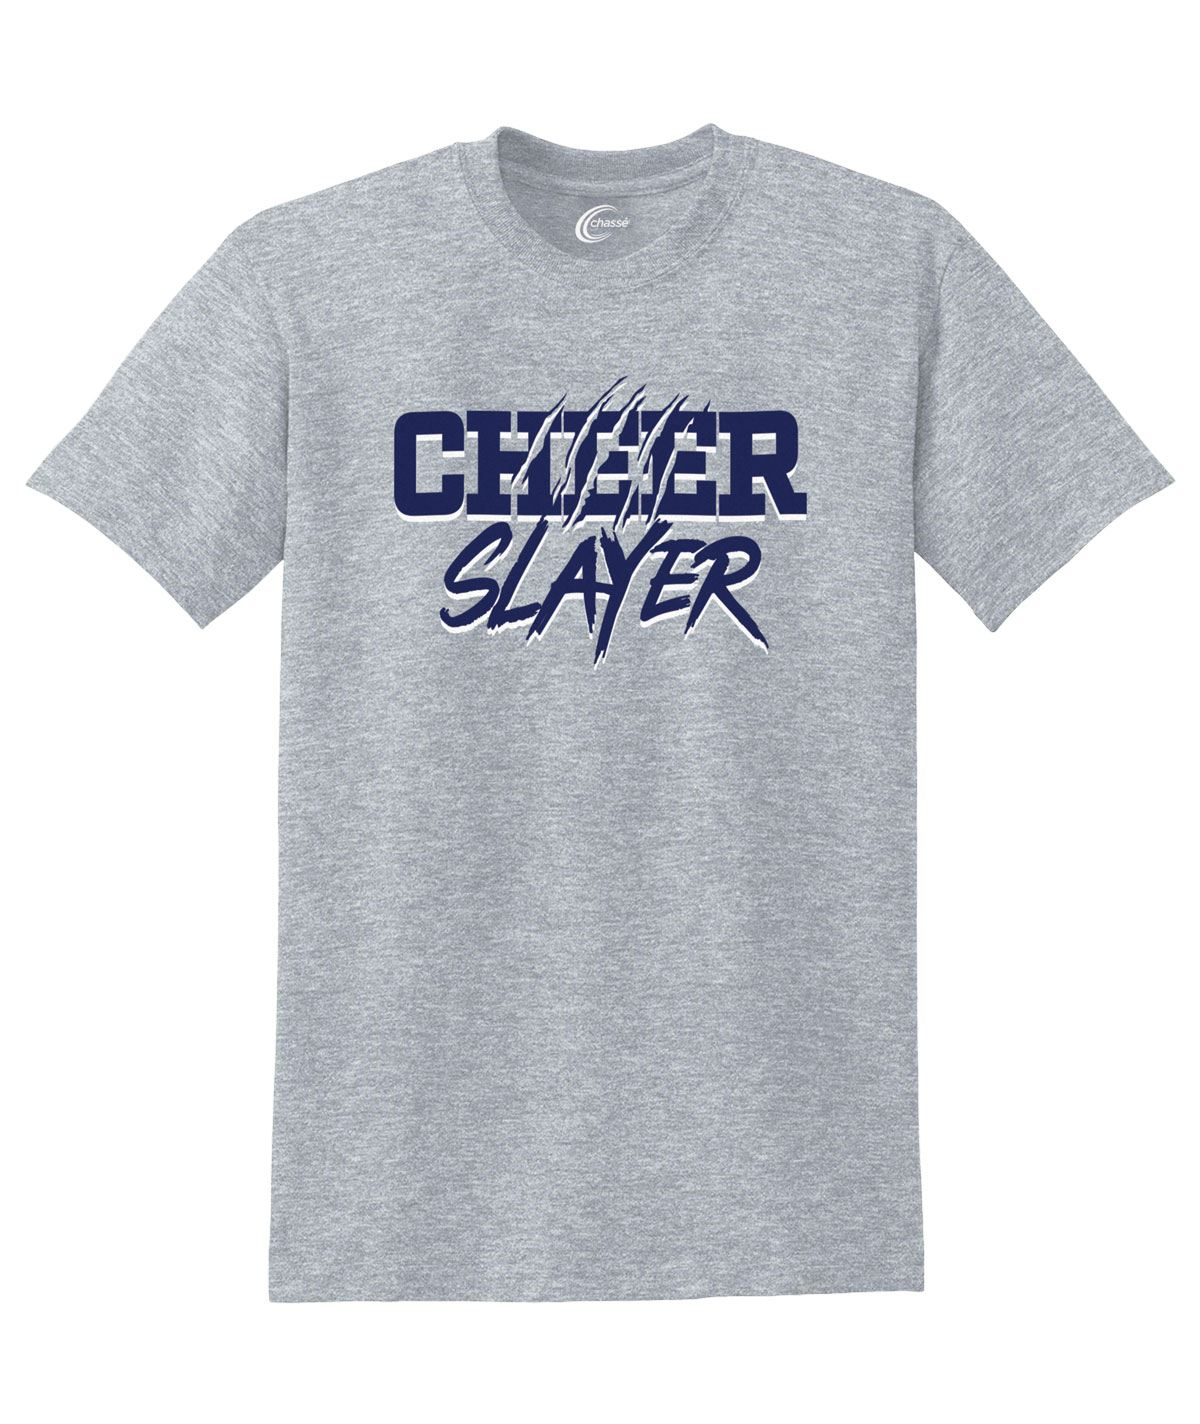 Chasse Cheer Slayer Tee